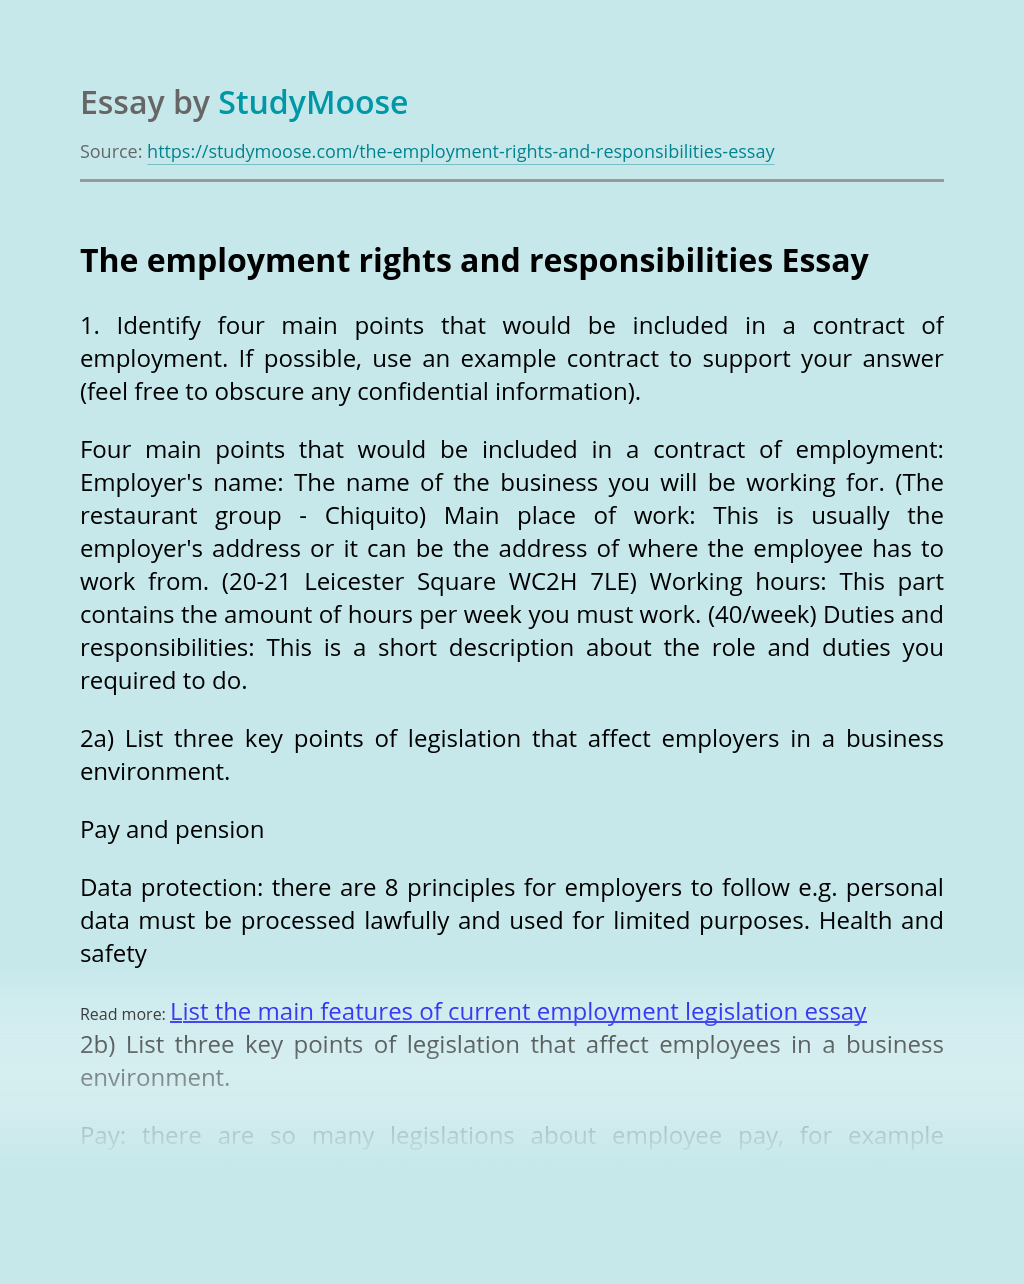 The employment rights and responsibilities